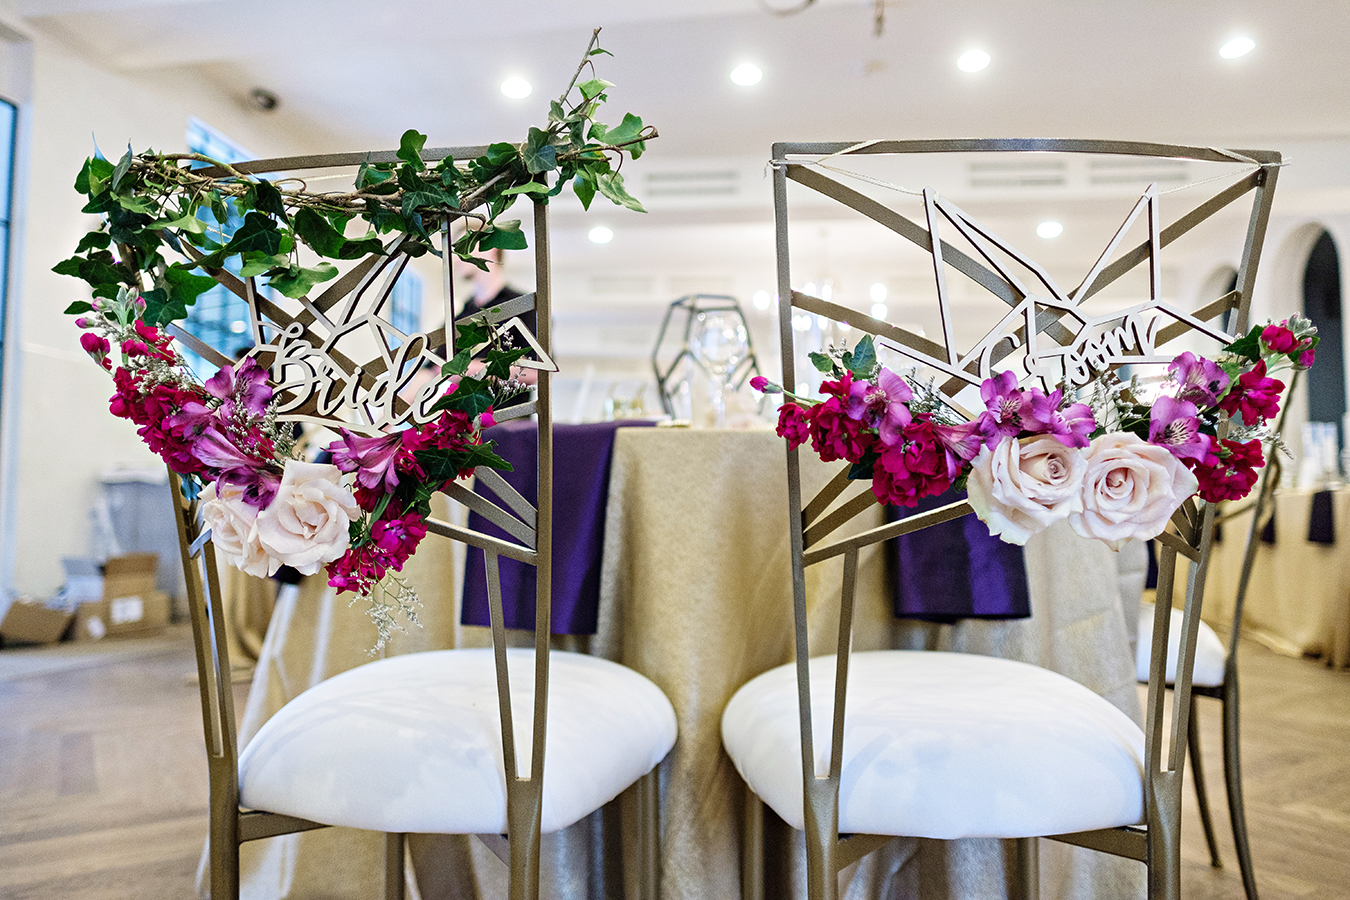 True Value Rental's Chameleon Chairs with floral decoration. Photo by: Studio Tran Photography